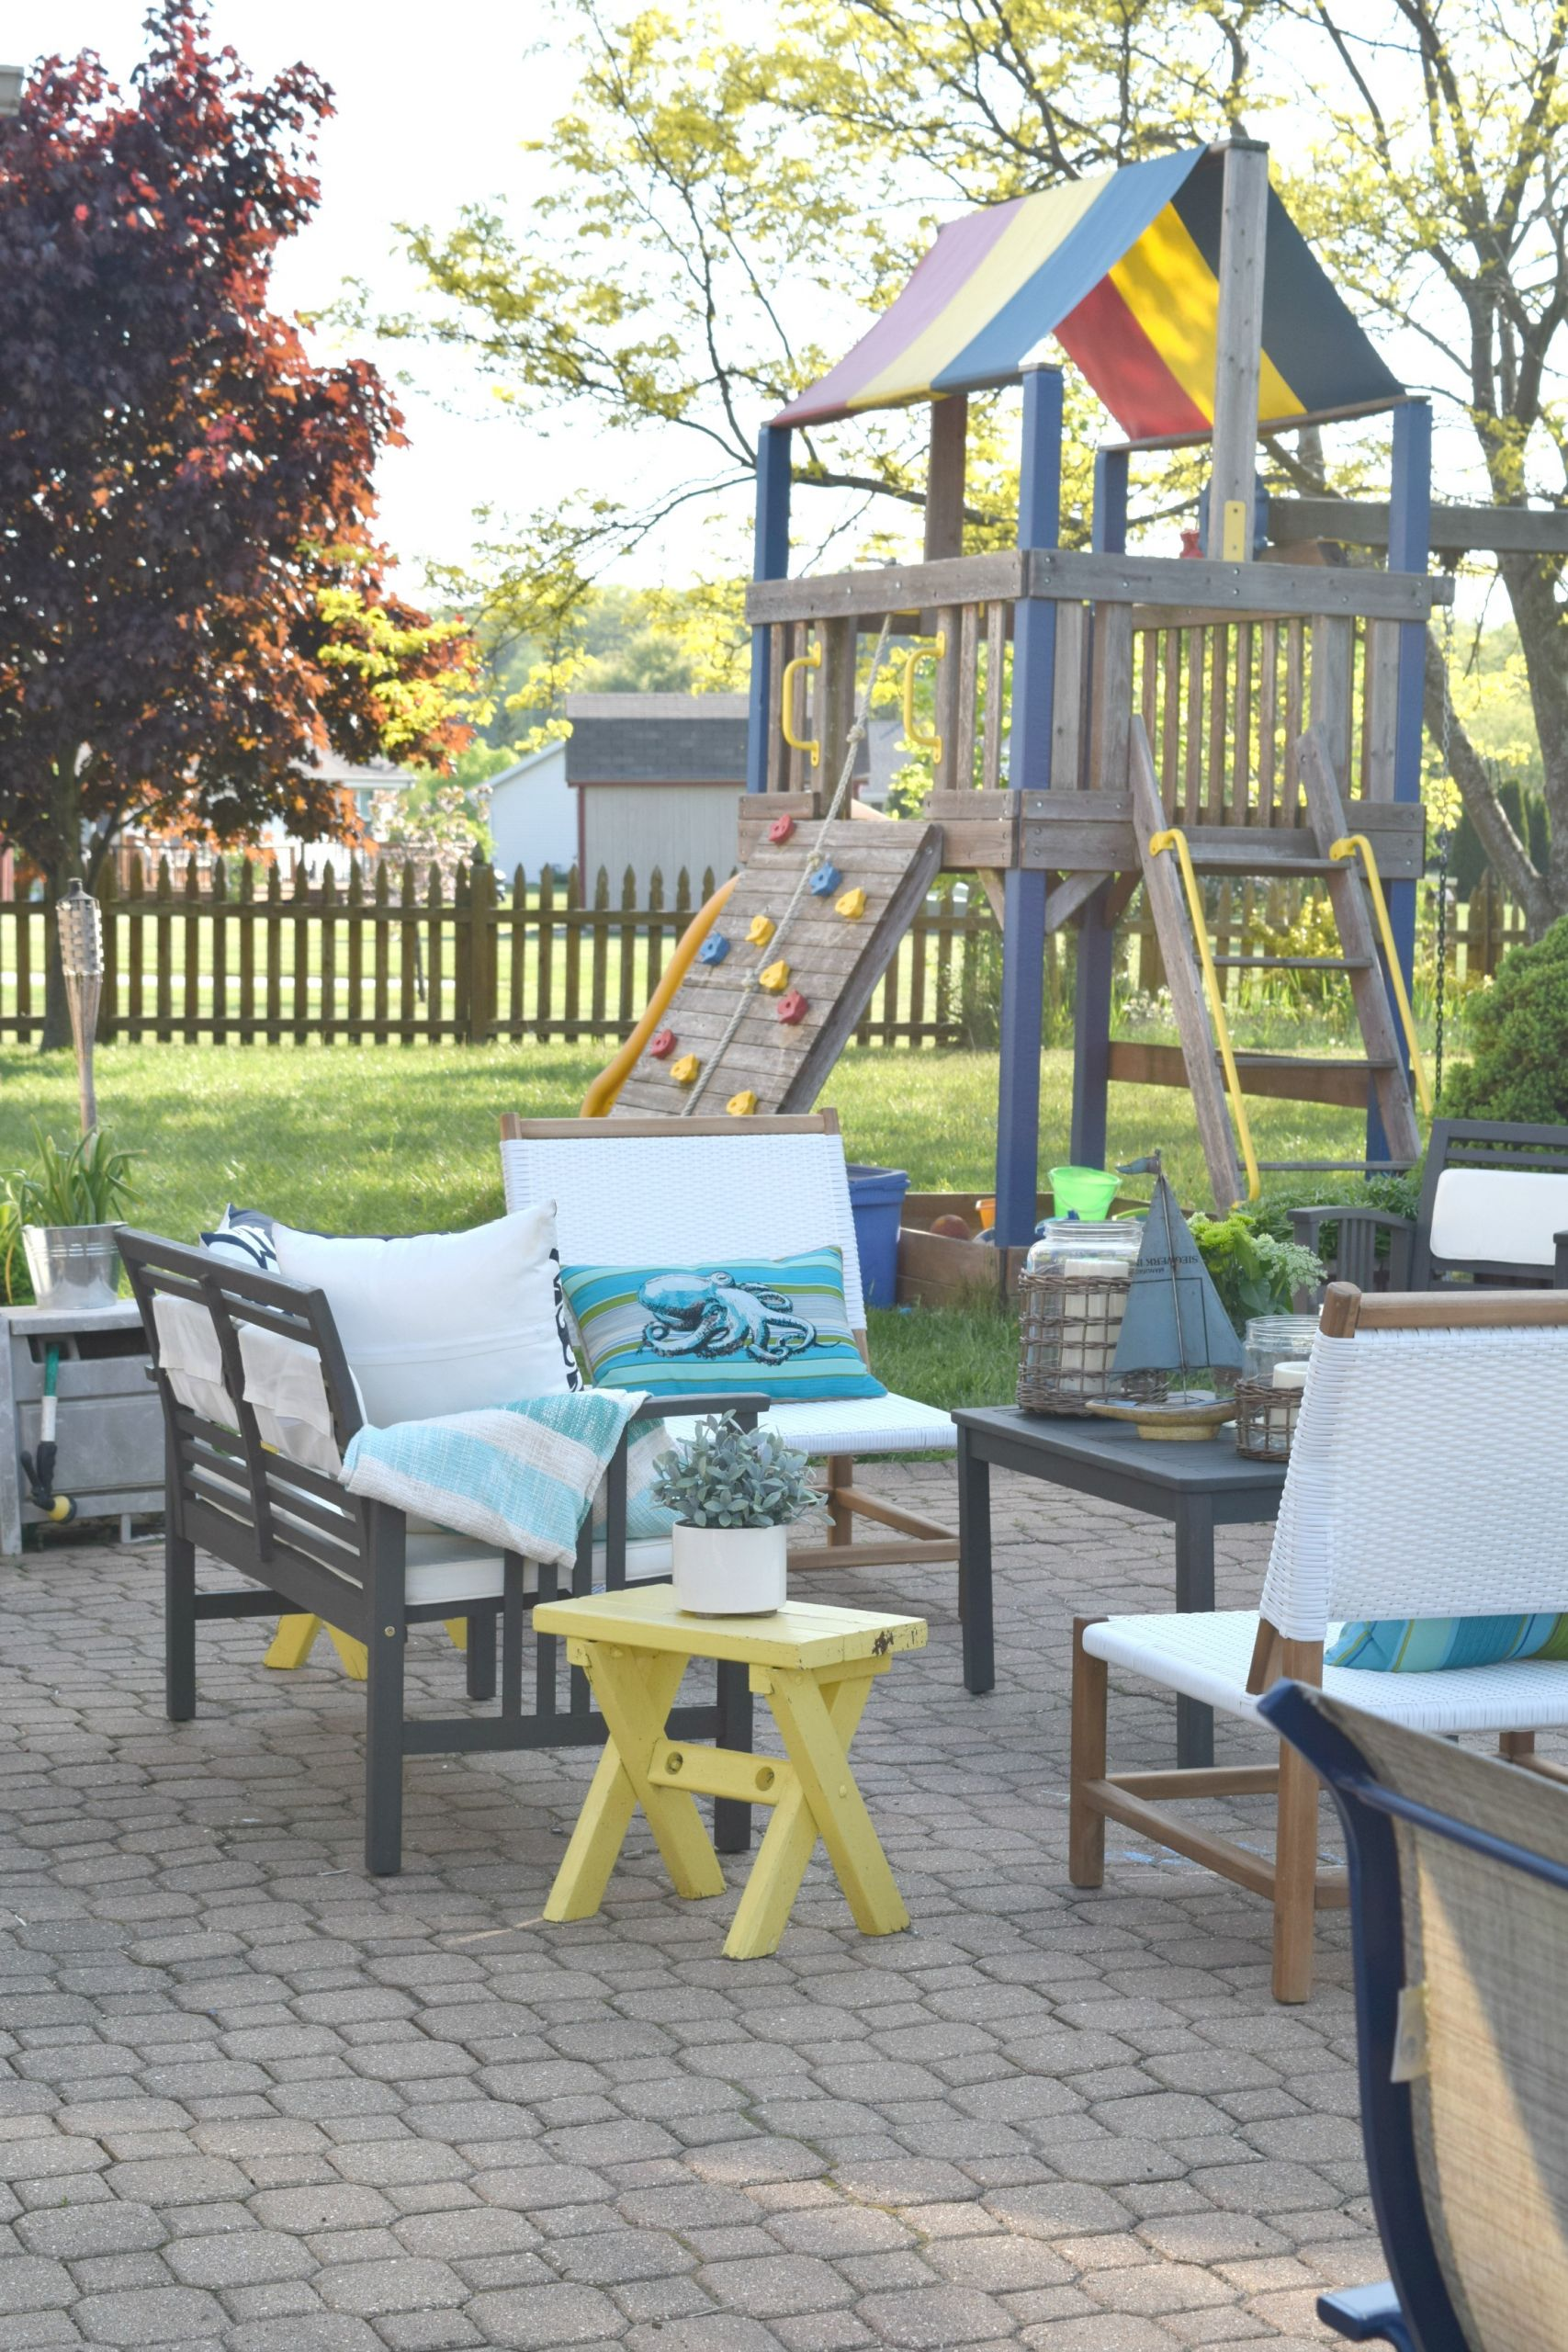 Kid Friendly Backyard Ideas  Summer outdoor home tour • Our House Now a Home